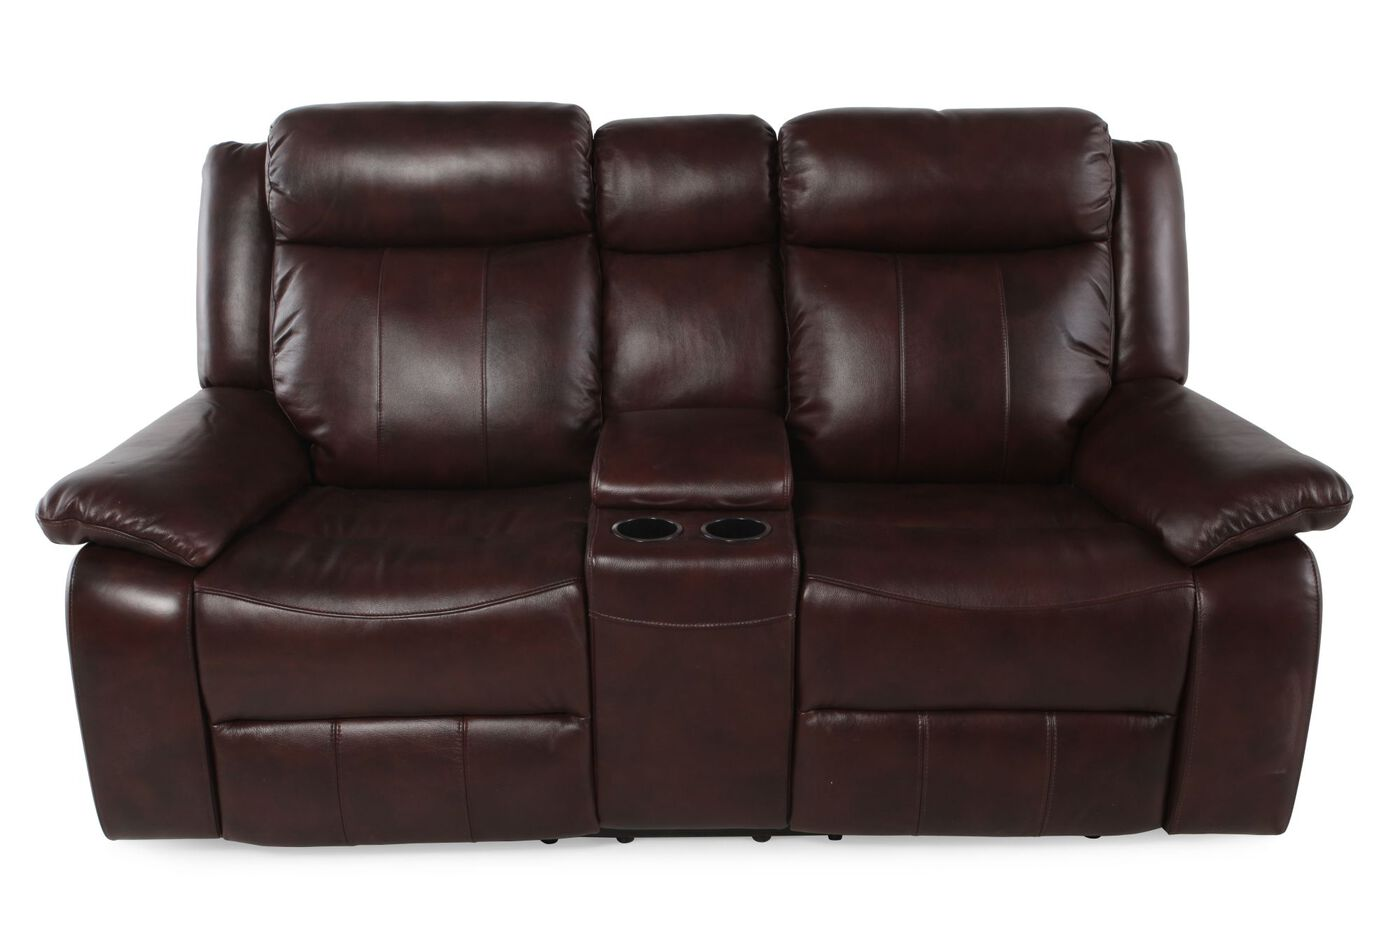 Boulevard Power Reclining Loveseat With Console Mathis Brothers Furniture